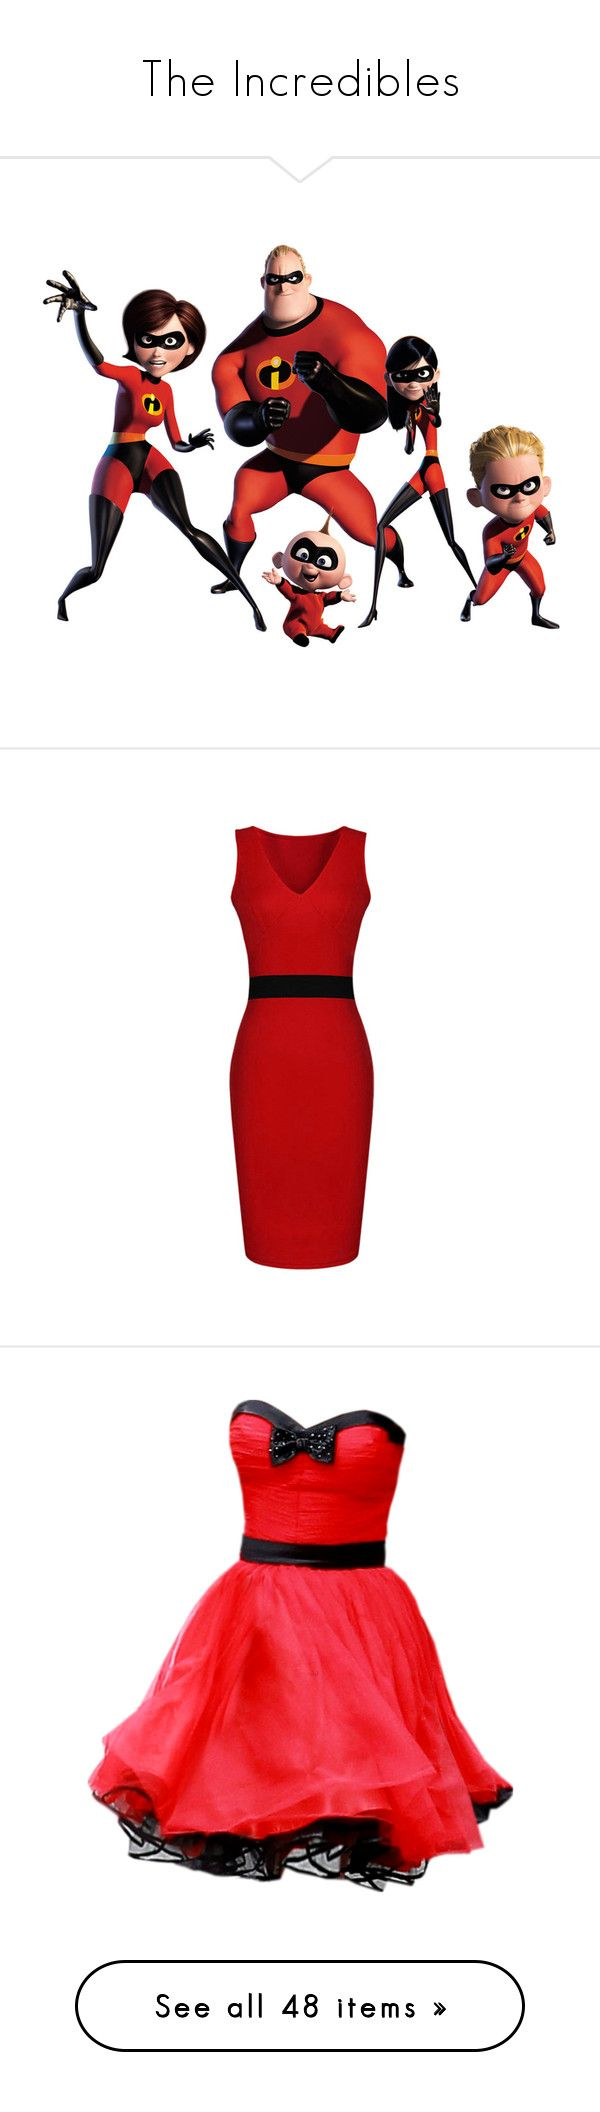 """""""The Incredibles"""" by disneydressing ❤ liked on Polyvore featuring disney, characters, incredibles, the incredibles, cartoons, dresses, red, knee length dresses, sexy dresses and red v neck dress"""